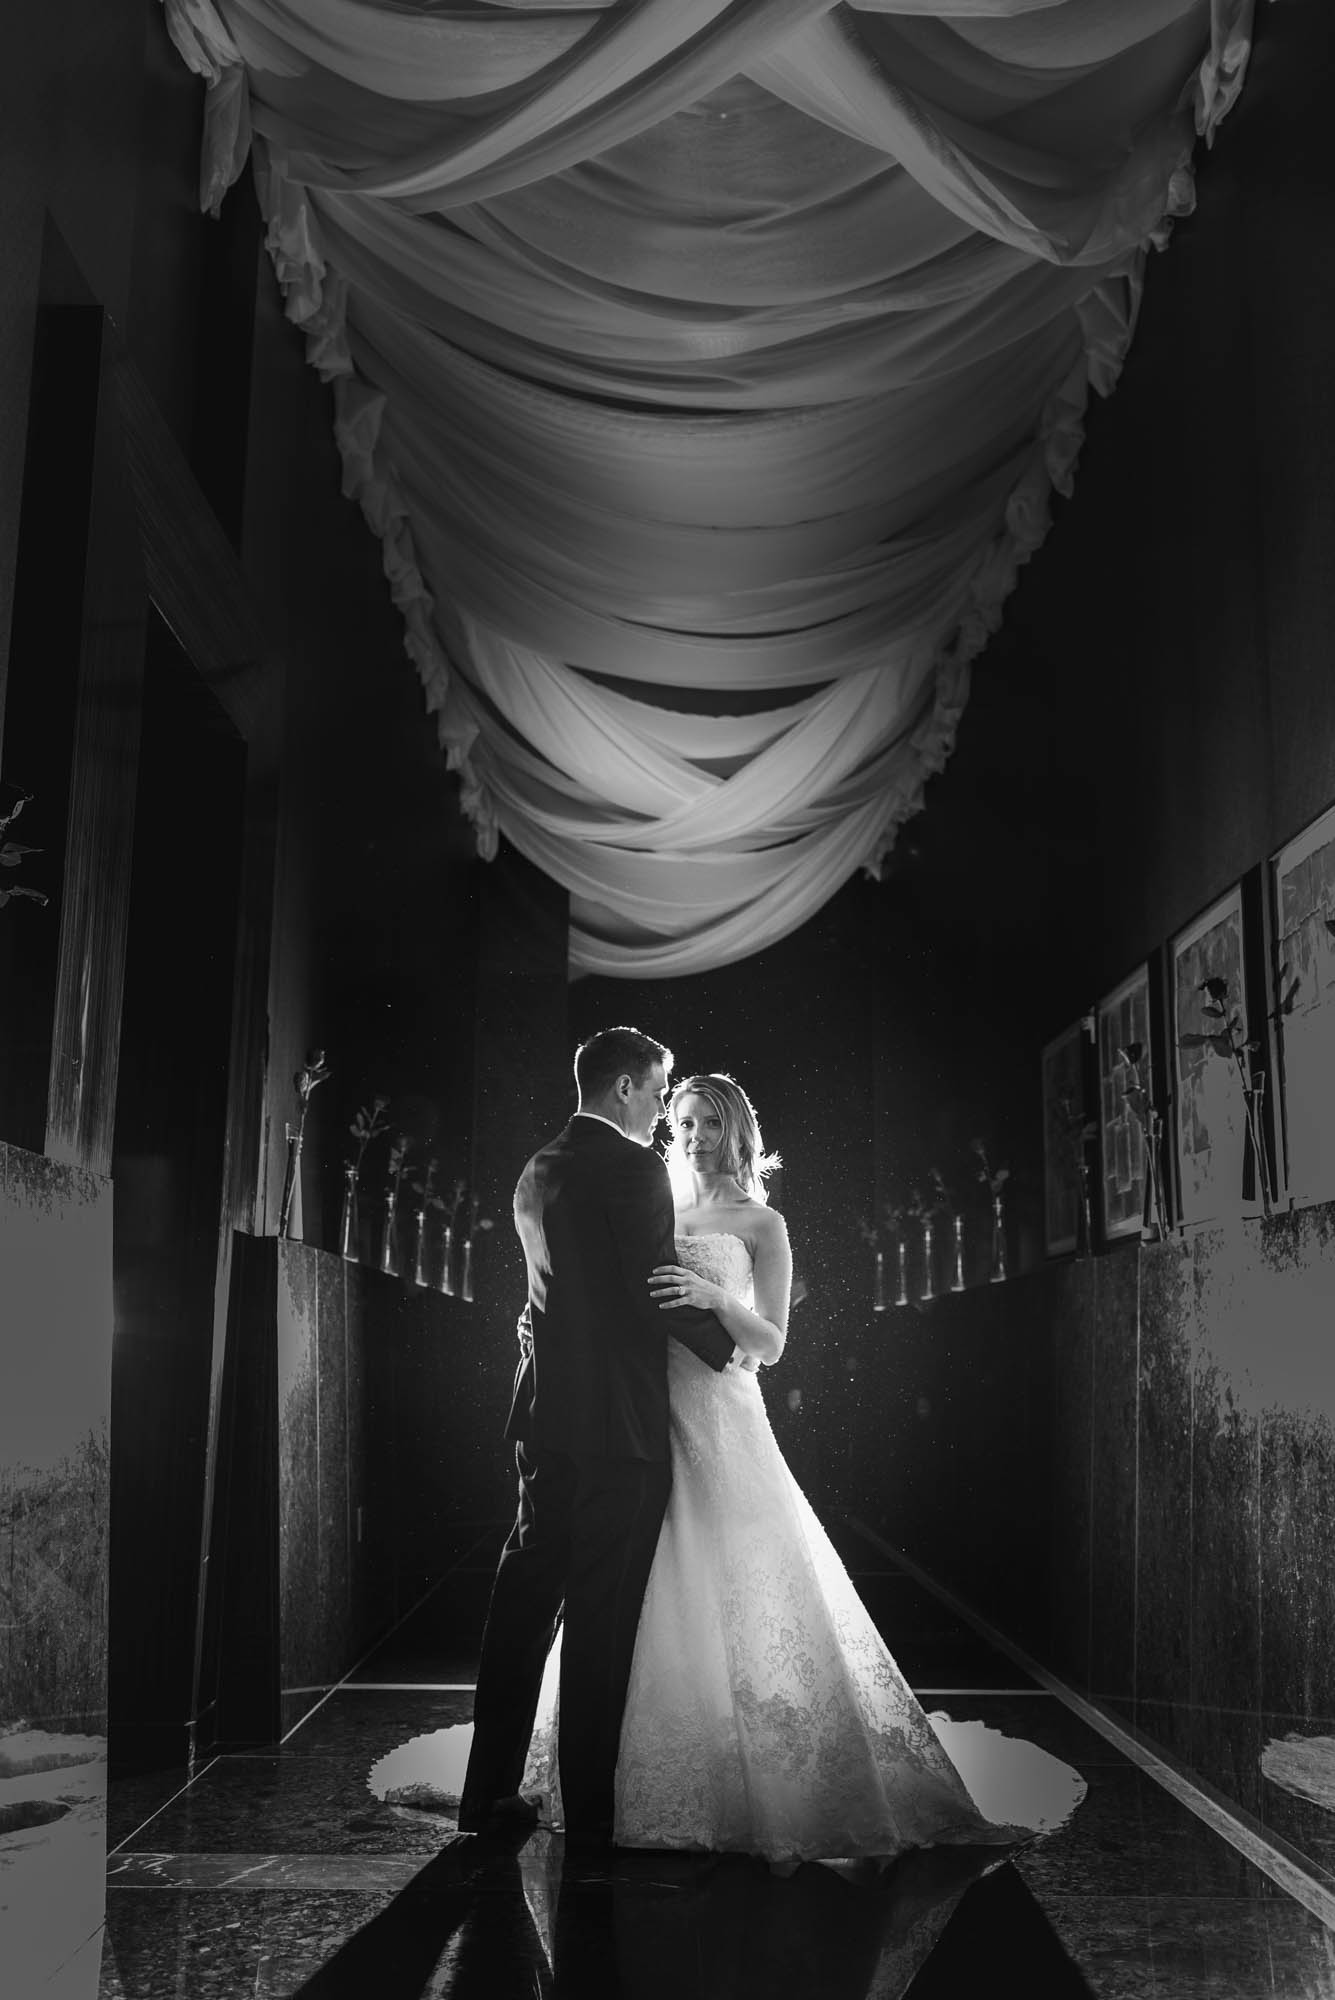 Black and white Dramatic High Fashion Wedding Photo.   CREATIVE PARTNERS:    PHOTOGRAPHY •  AltF Photography  ,PLANNING •  Andrea Eppolito Events  ,FLORAL AND DECOR DESIGN •  Destinations by Design  ,VENUE AND CATERING •  Mandarin Oriental, Las Vegas  ,STATIONERY DESIGN •  Paper and Home  ,  BRIDE'S GOWN • Vera Wang ,SHOES • Jimmy Choo ,  GROOM'S FORMAL WEAR •  Vera Wang  ,  ENGAGEMENT RING • Delage Jewelers ,  WEDDING BANDS • T-Birds Jewels   ,  CAKE DESIGN • Mandarin Oriental Las Vegas , DRAPING;  DANCE FLOOR DESIGN AND PRODUCTION • Destination by Design ,  LIVE EVENT ARTIST • Sam Day ,ENTERTAINMENT  • Lucky Devils Band ,CINEMATOGRAPHY • Something New